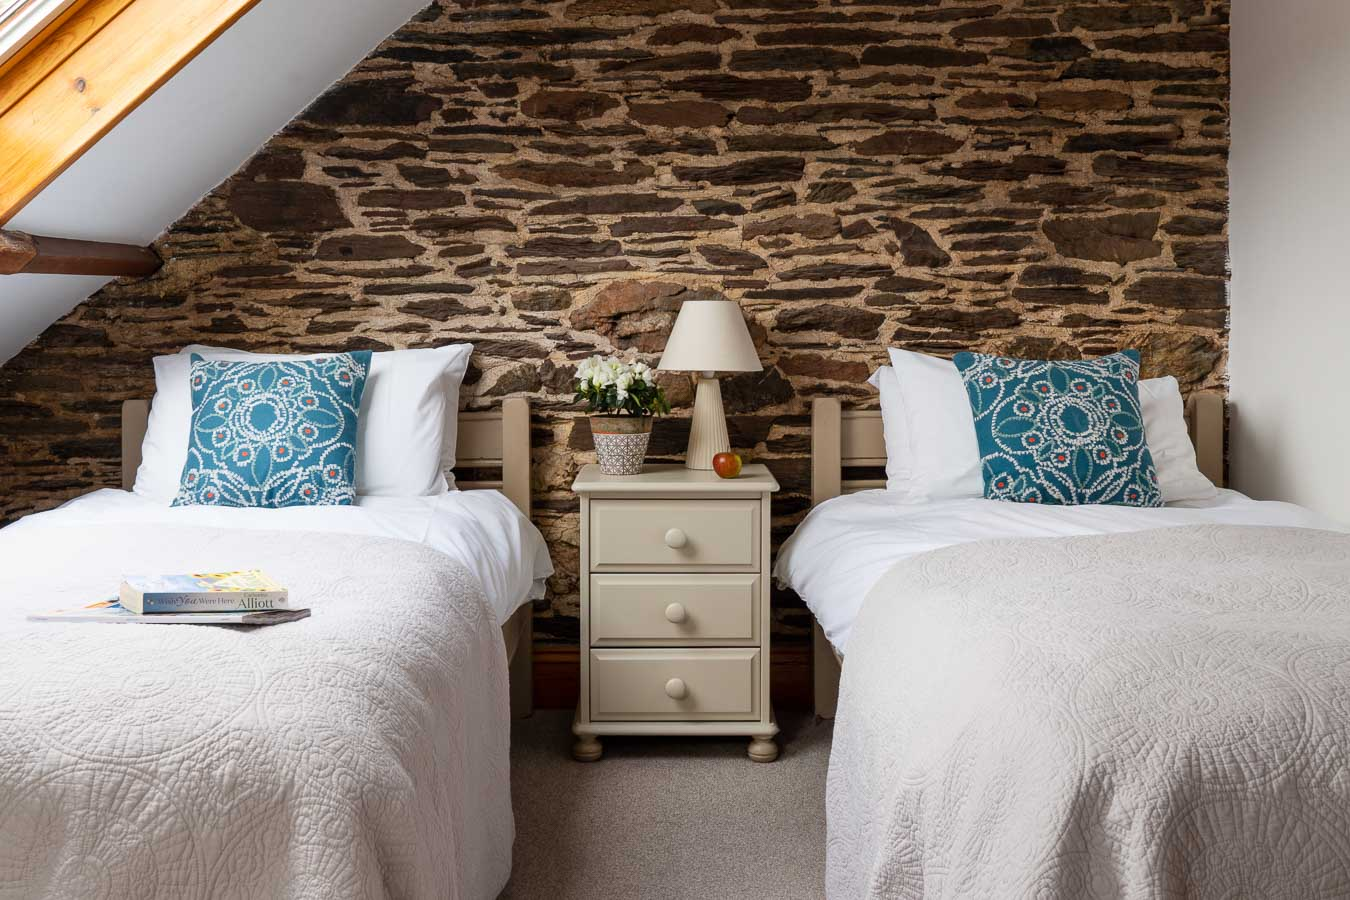 The charming twin room in Cartwheel cottage with exposed brick and soft tones at Flear Farm.